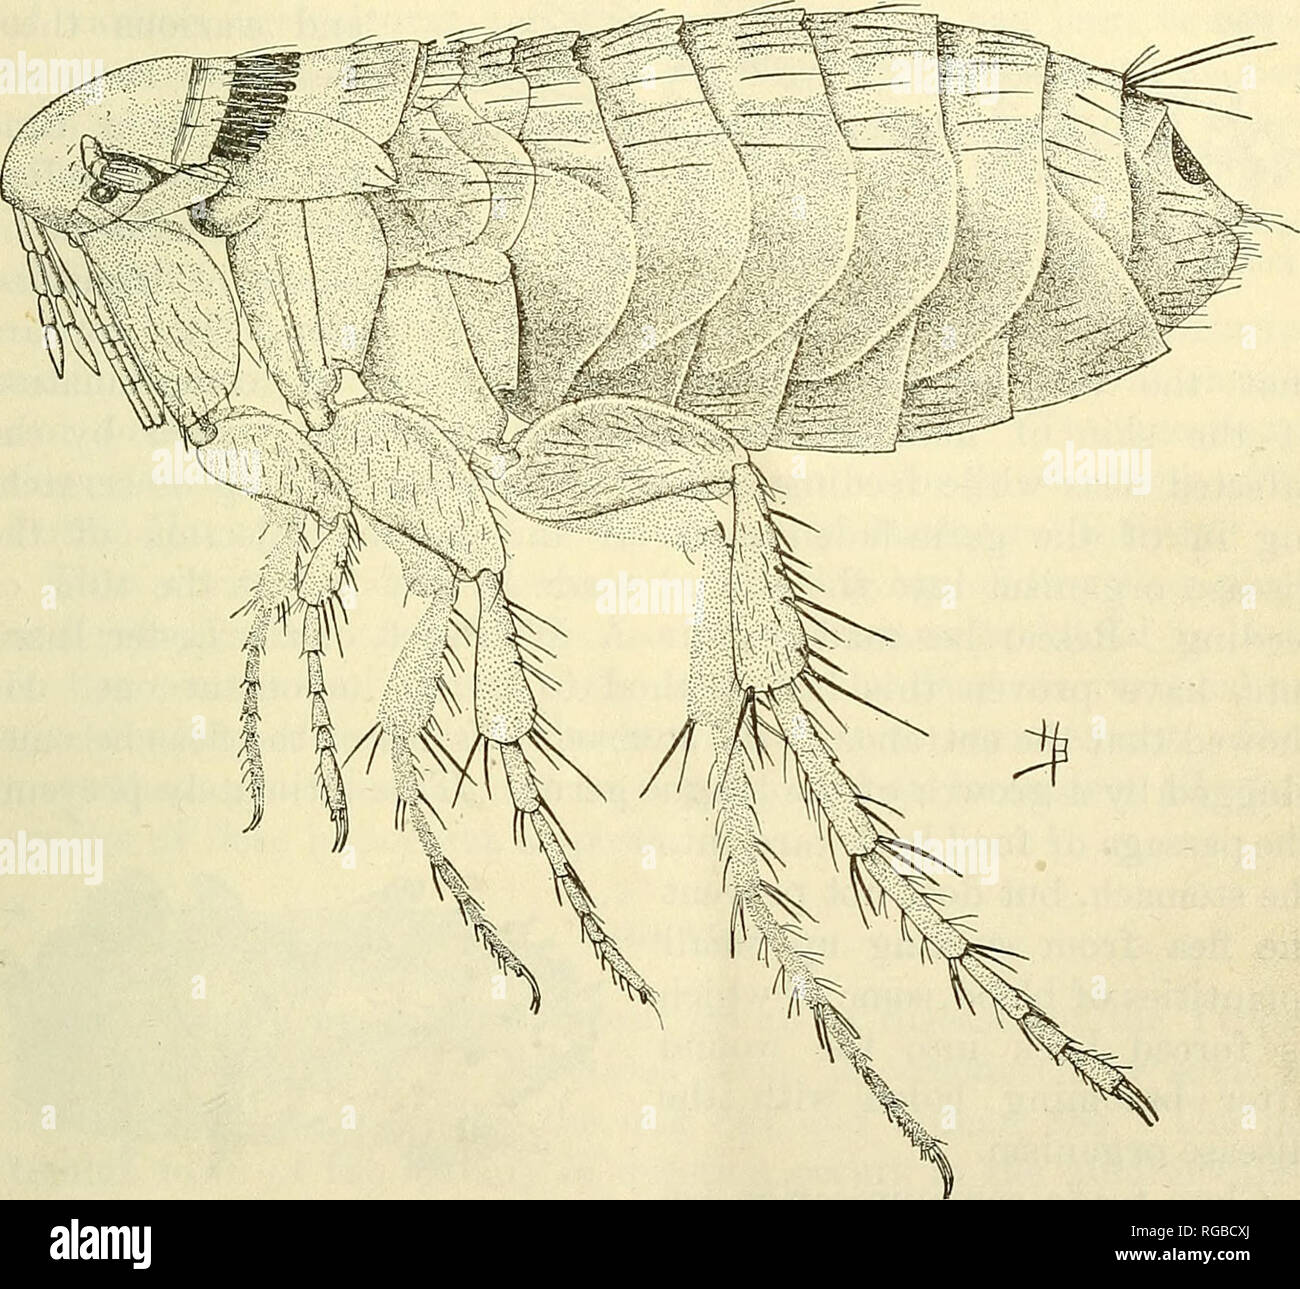 Bulletin Of The U S Department Of Agriculture Agriculture Agriculture Fleas 13 The Indian Rat Flea Has Been Found To Be By Far The Most Im Portant In Plague Transmission In India